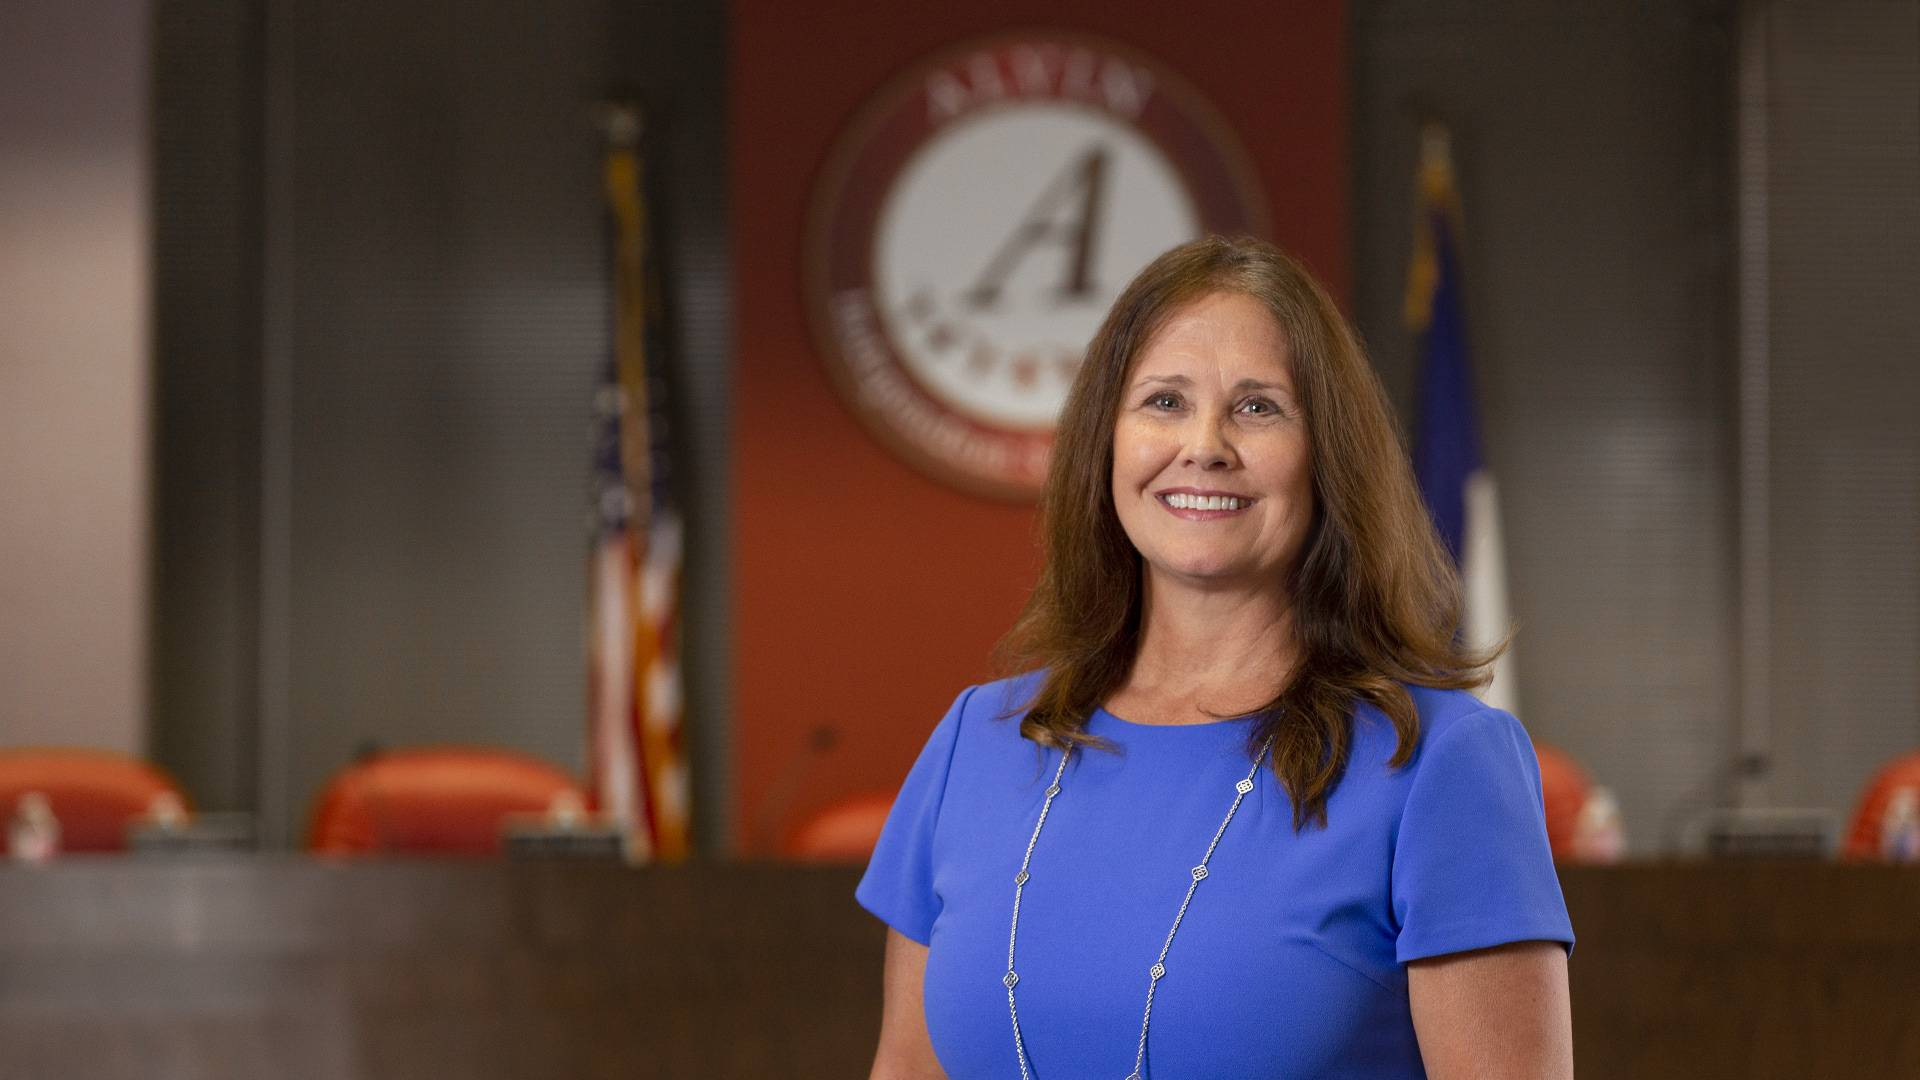 From teacher to superintendent, path paved by positive relationships